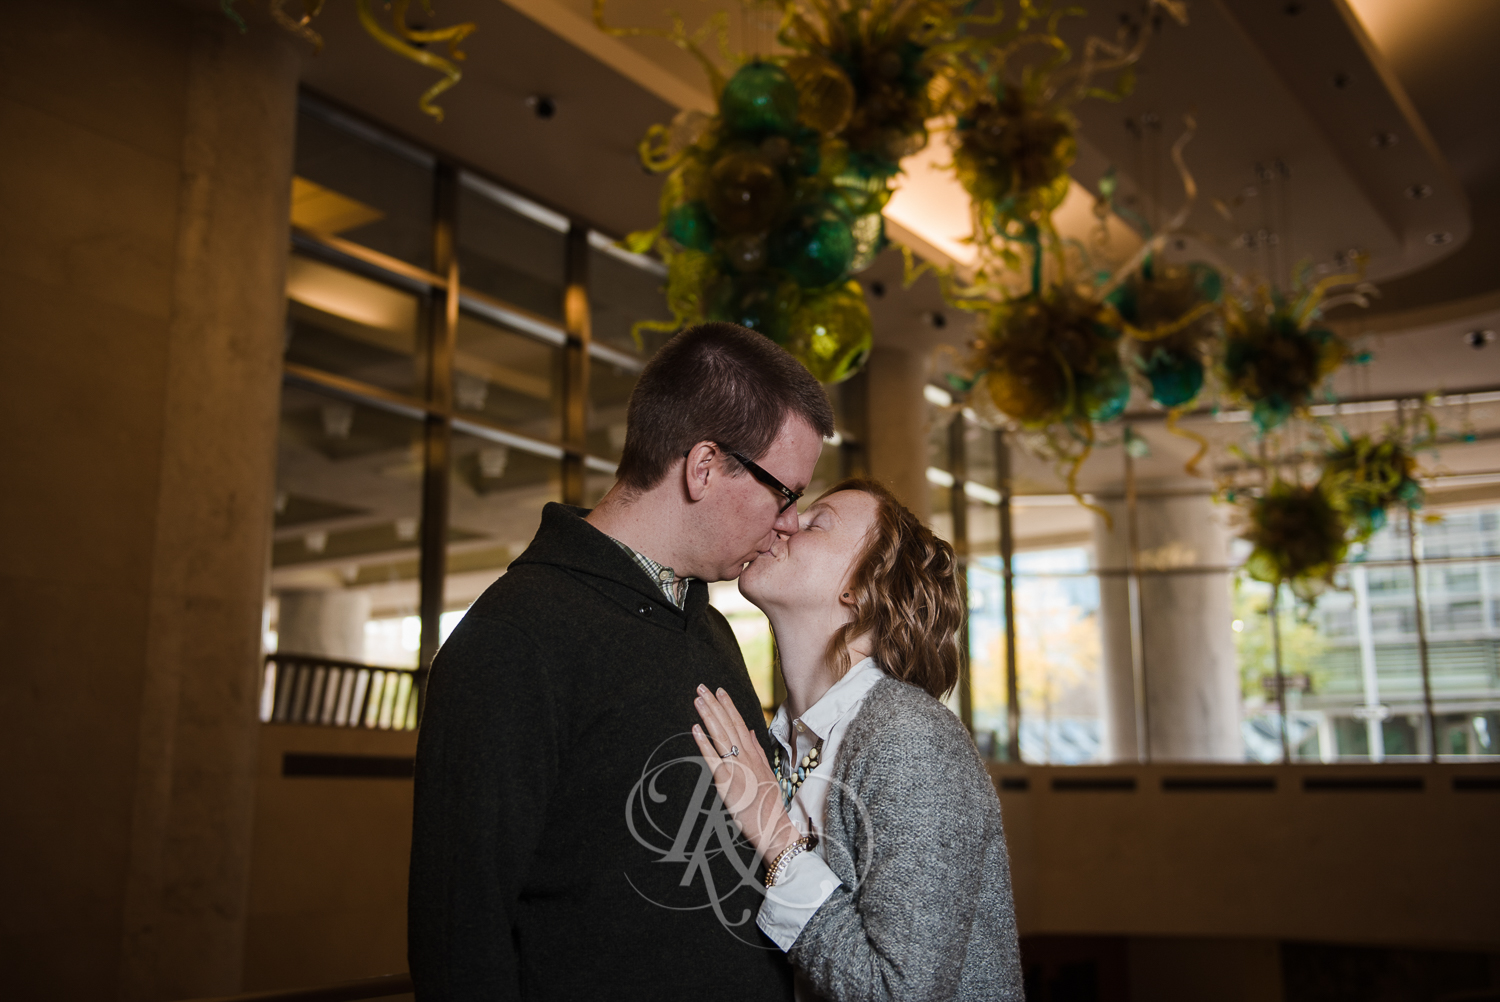 Rochester Engagement Photography - Erin & Jared - RKH Images-5